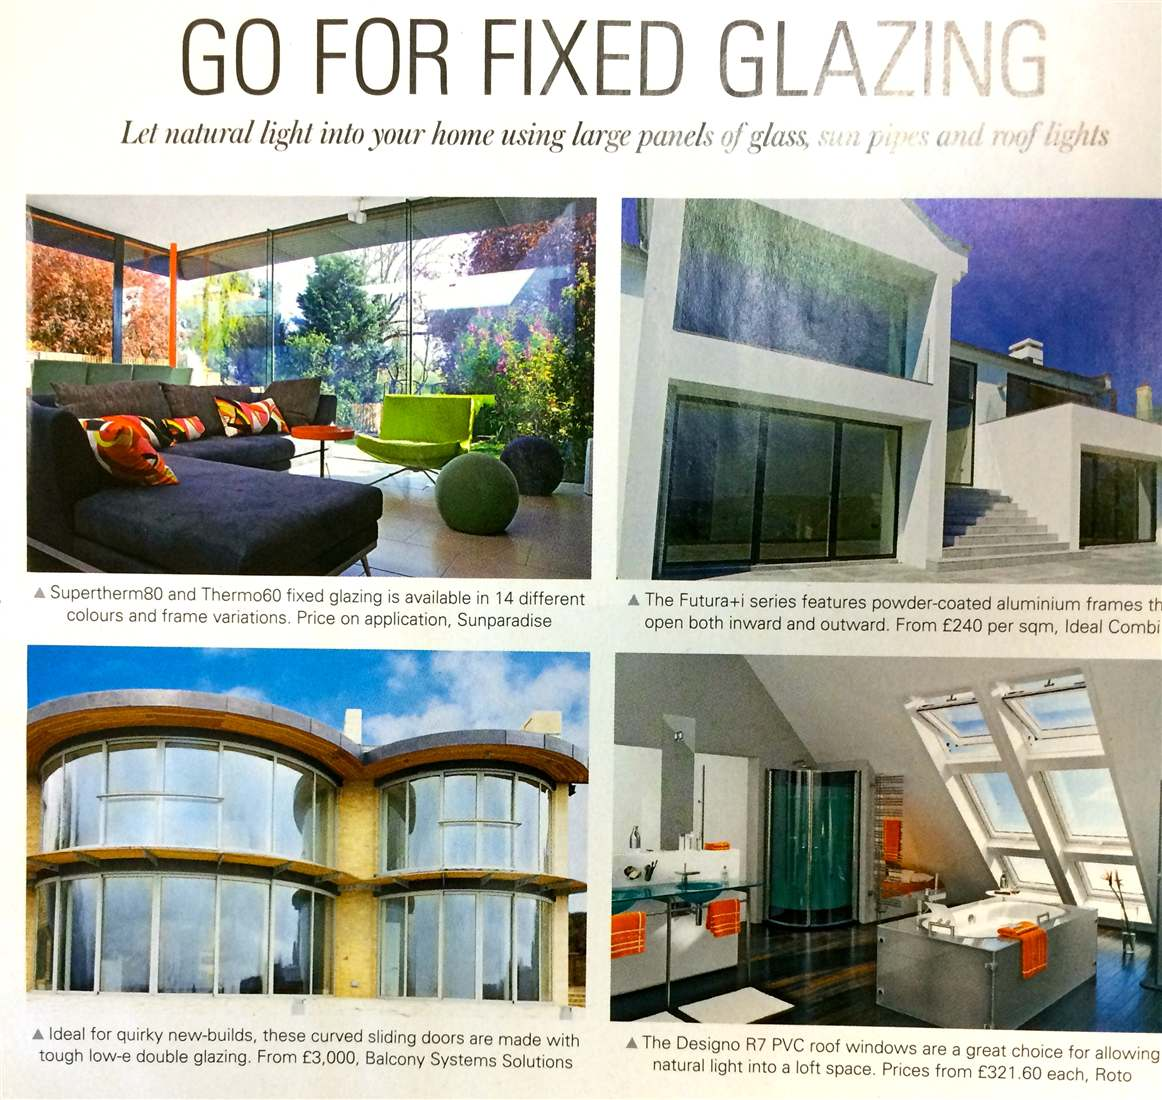 Grand Designs coverage